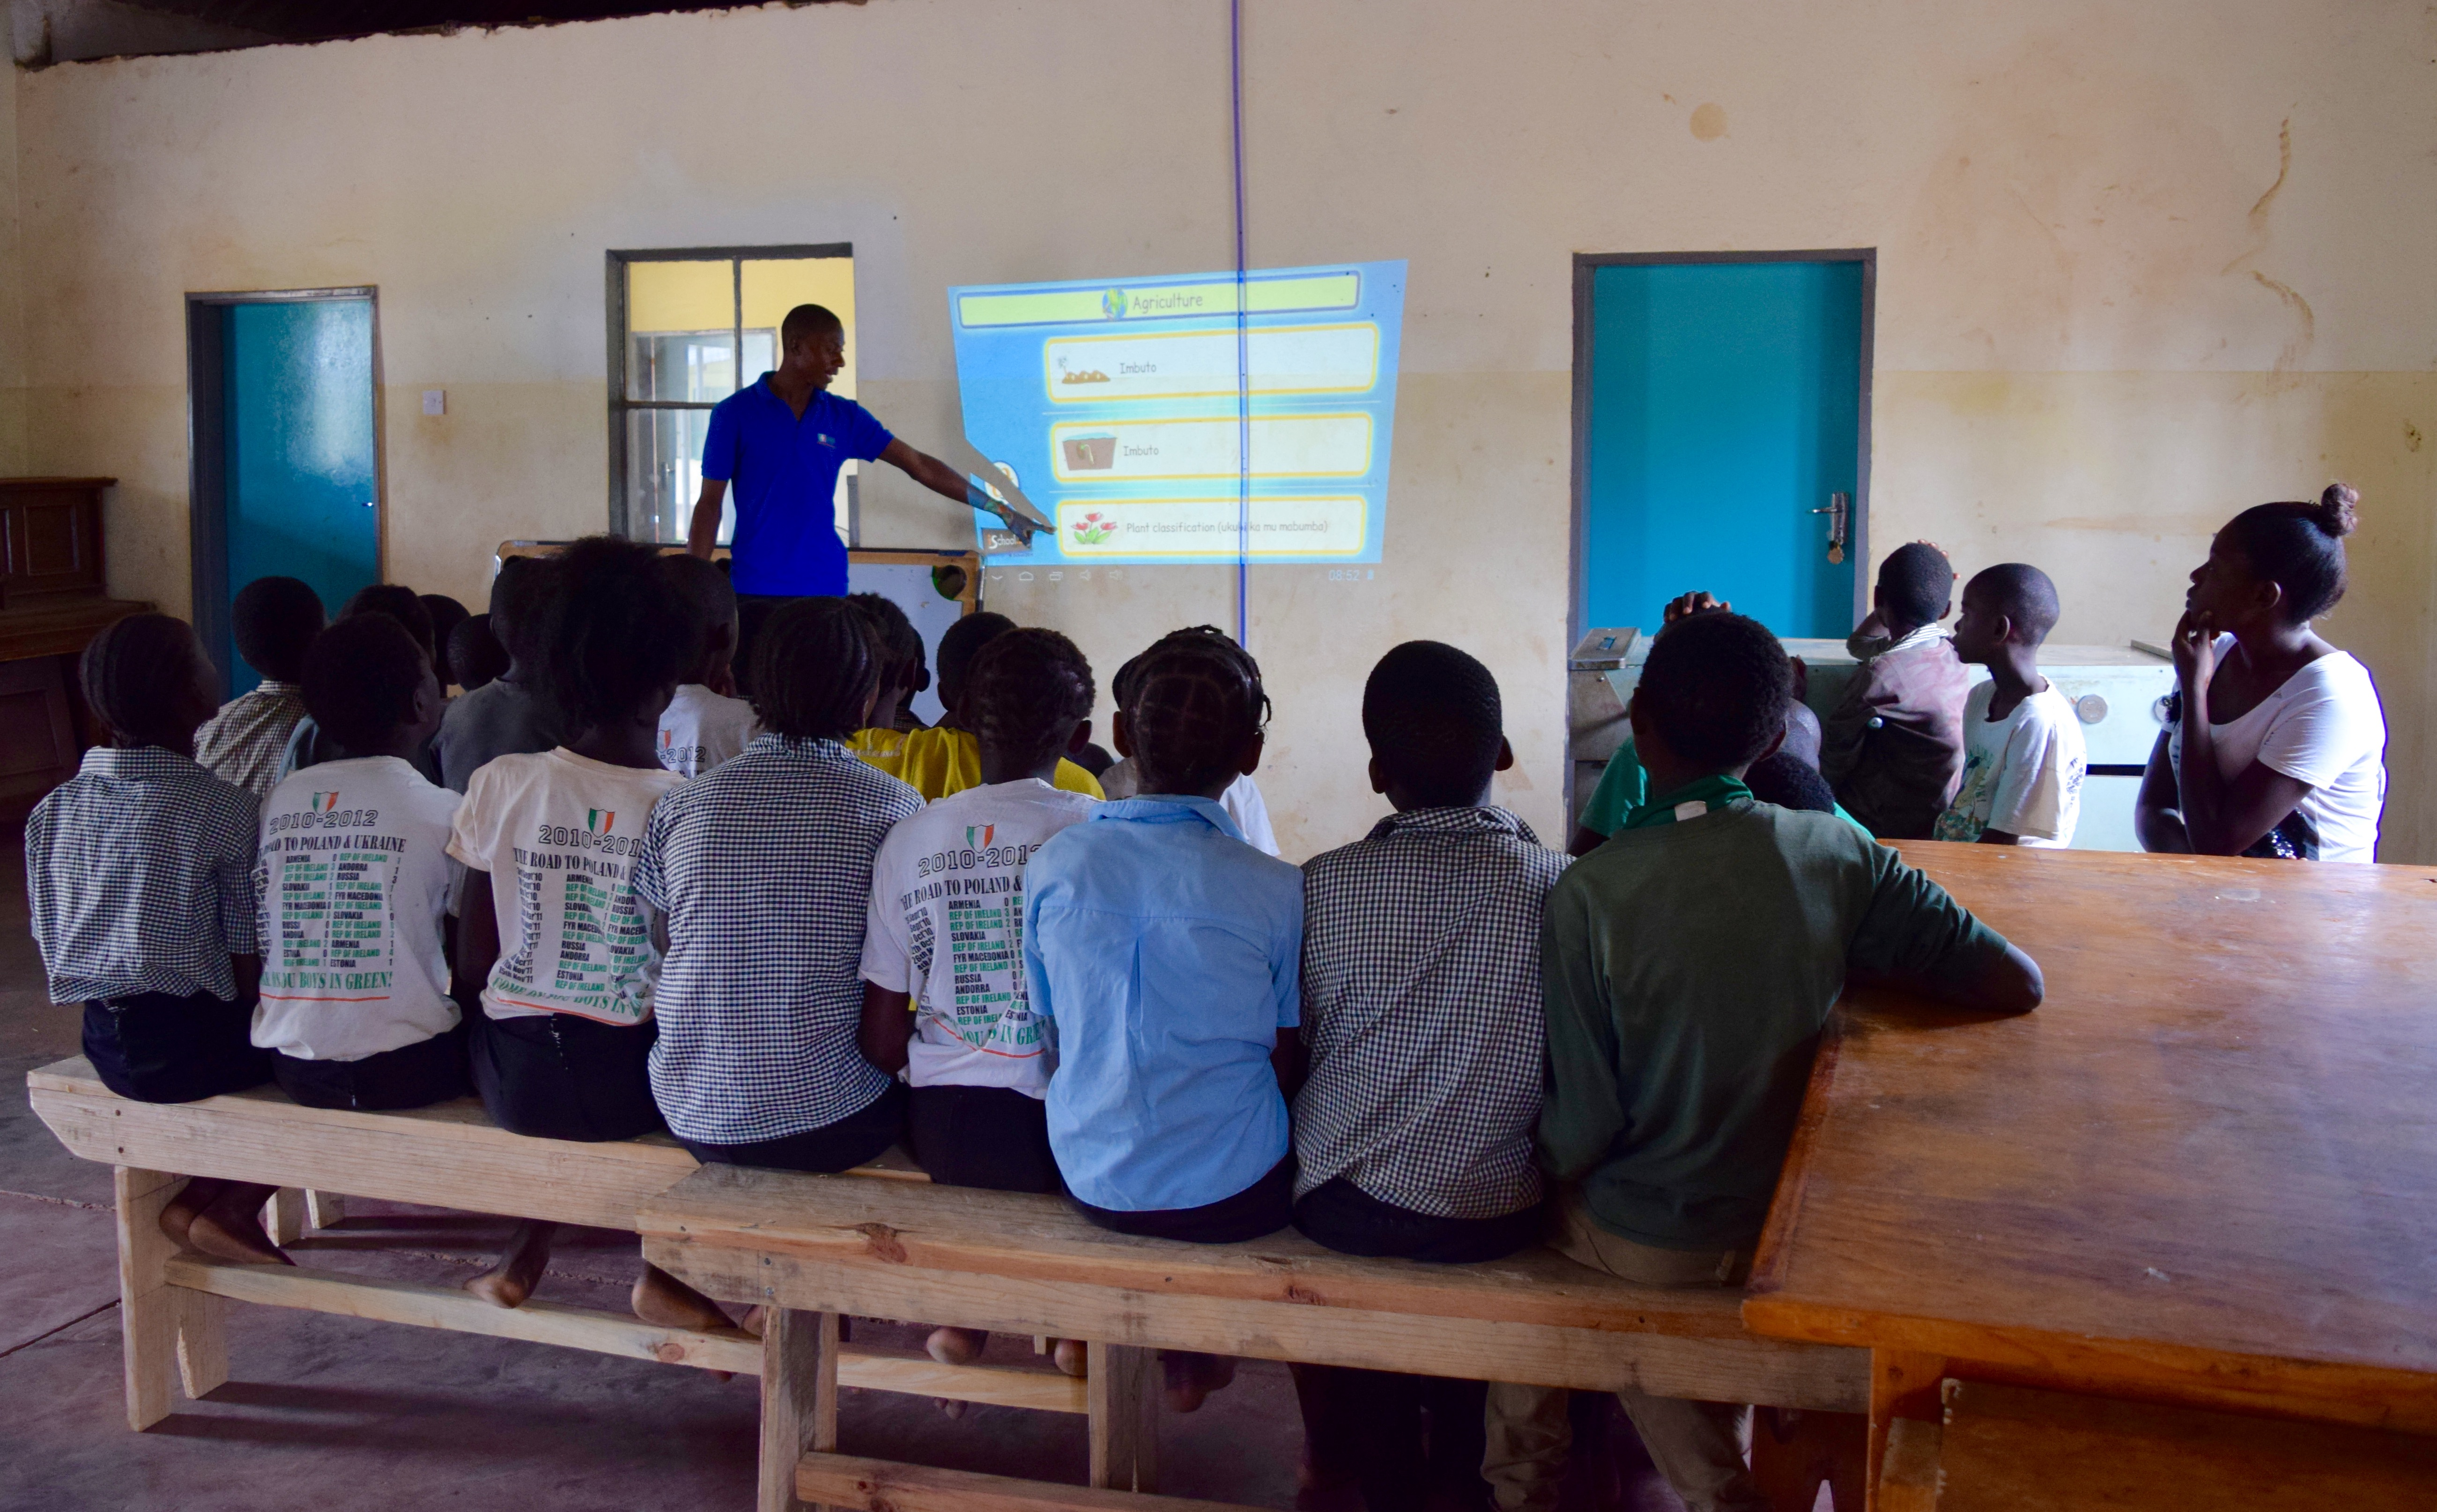 Teacher using projector in the class room